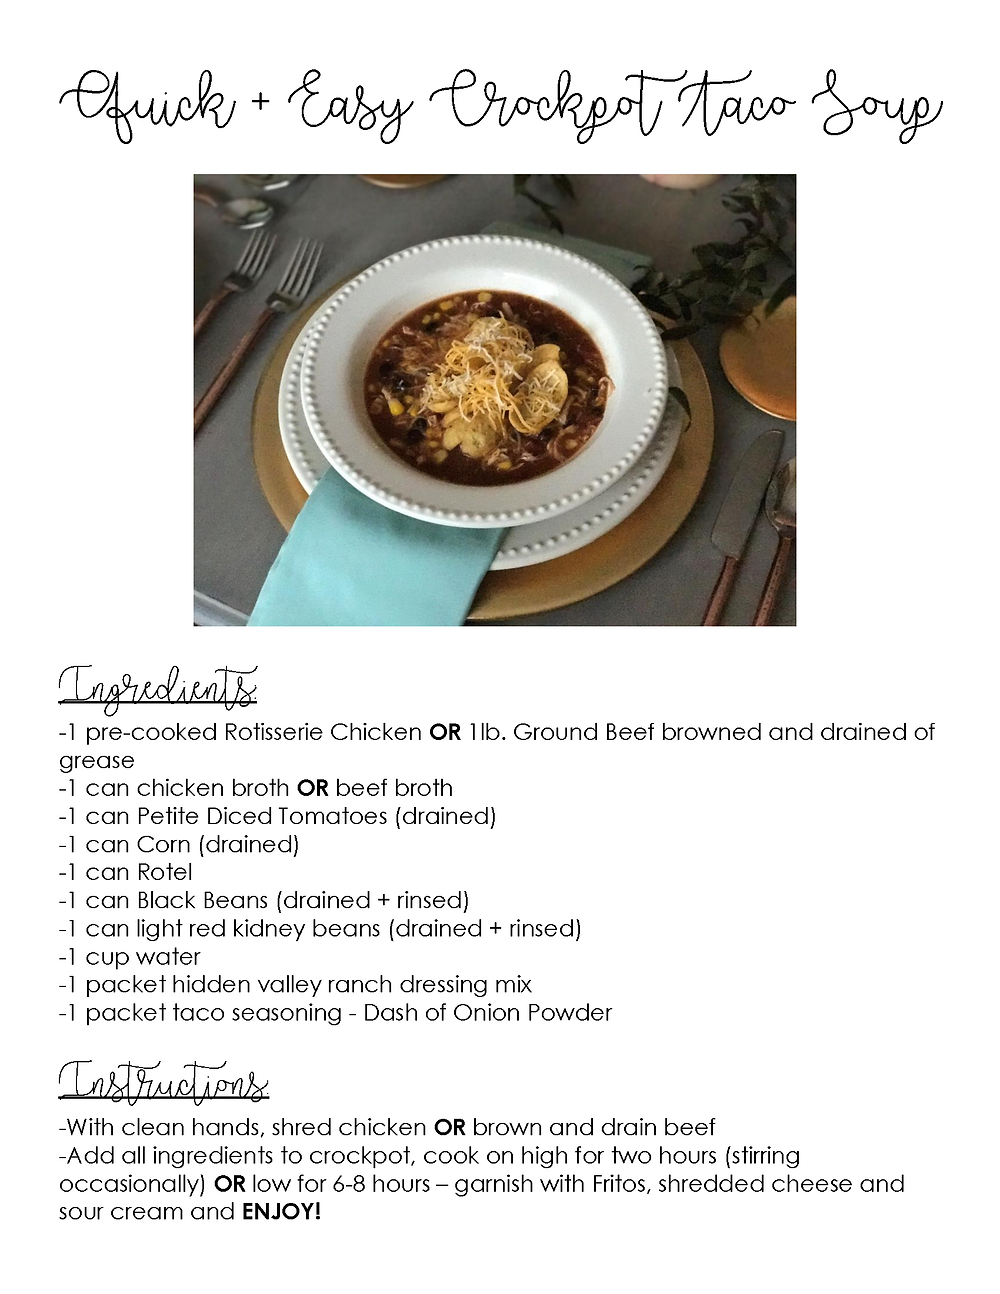 Quick and Easy Crockpot Taco Soup Recipe - Grace and Merriment